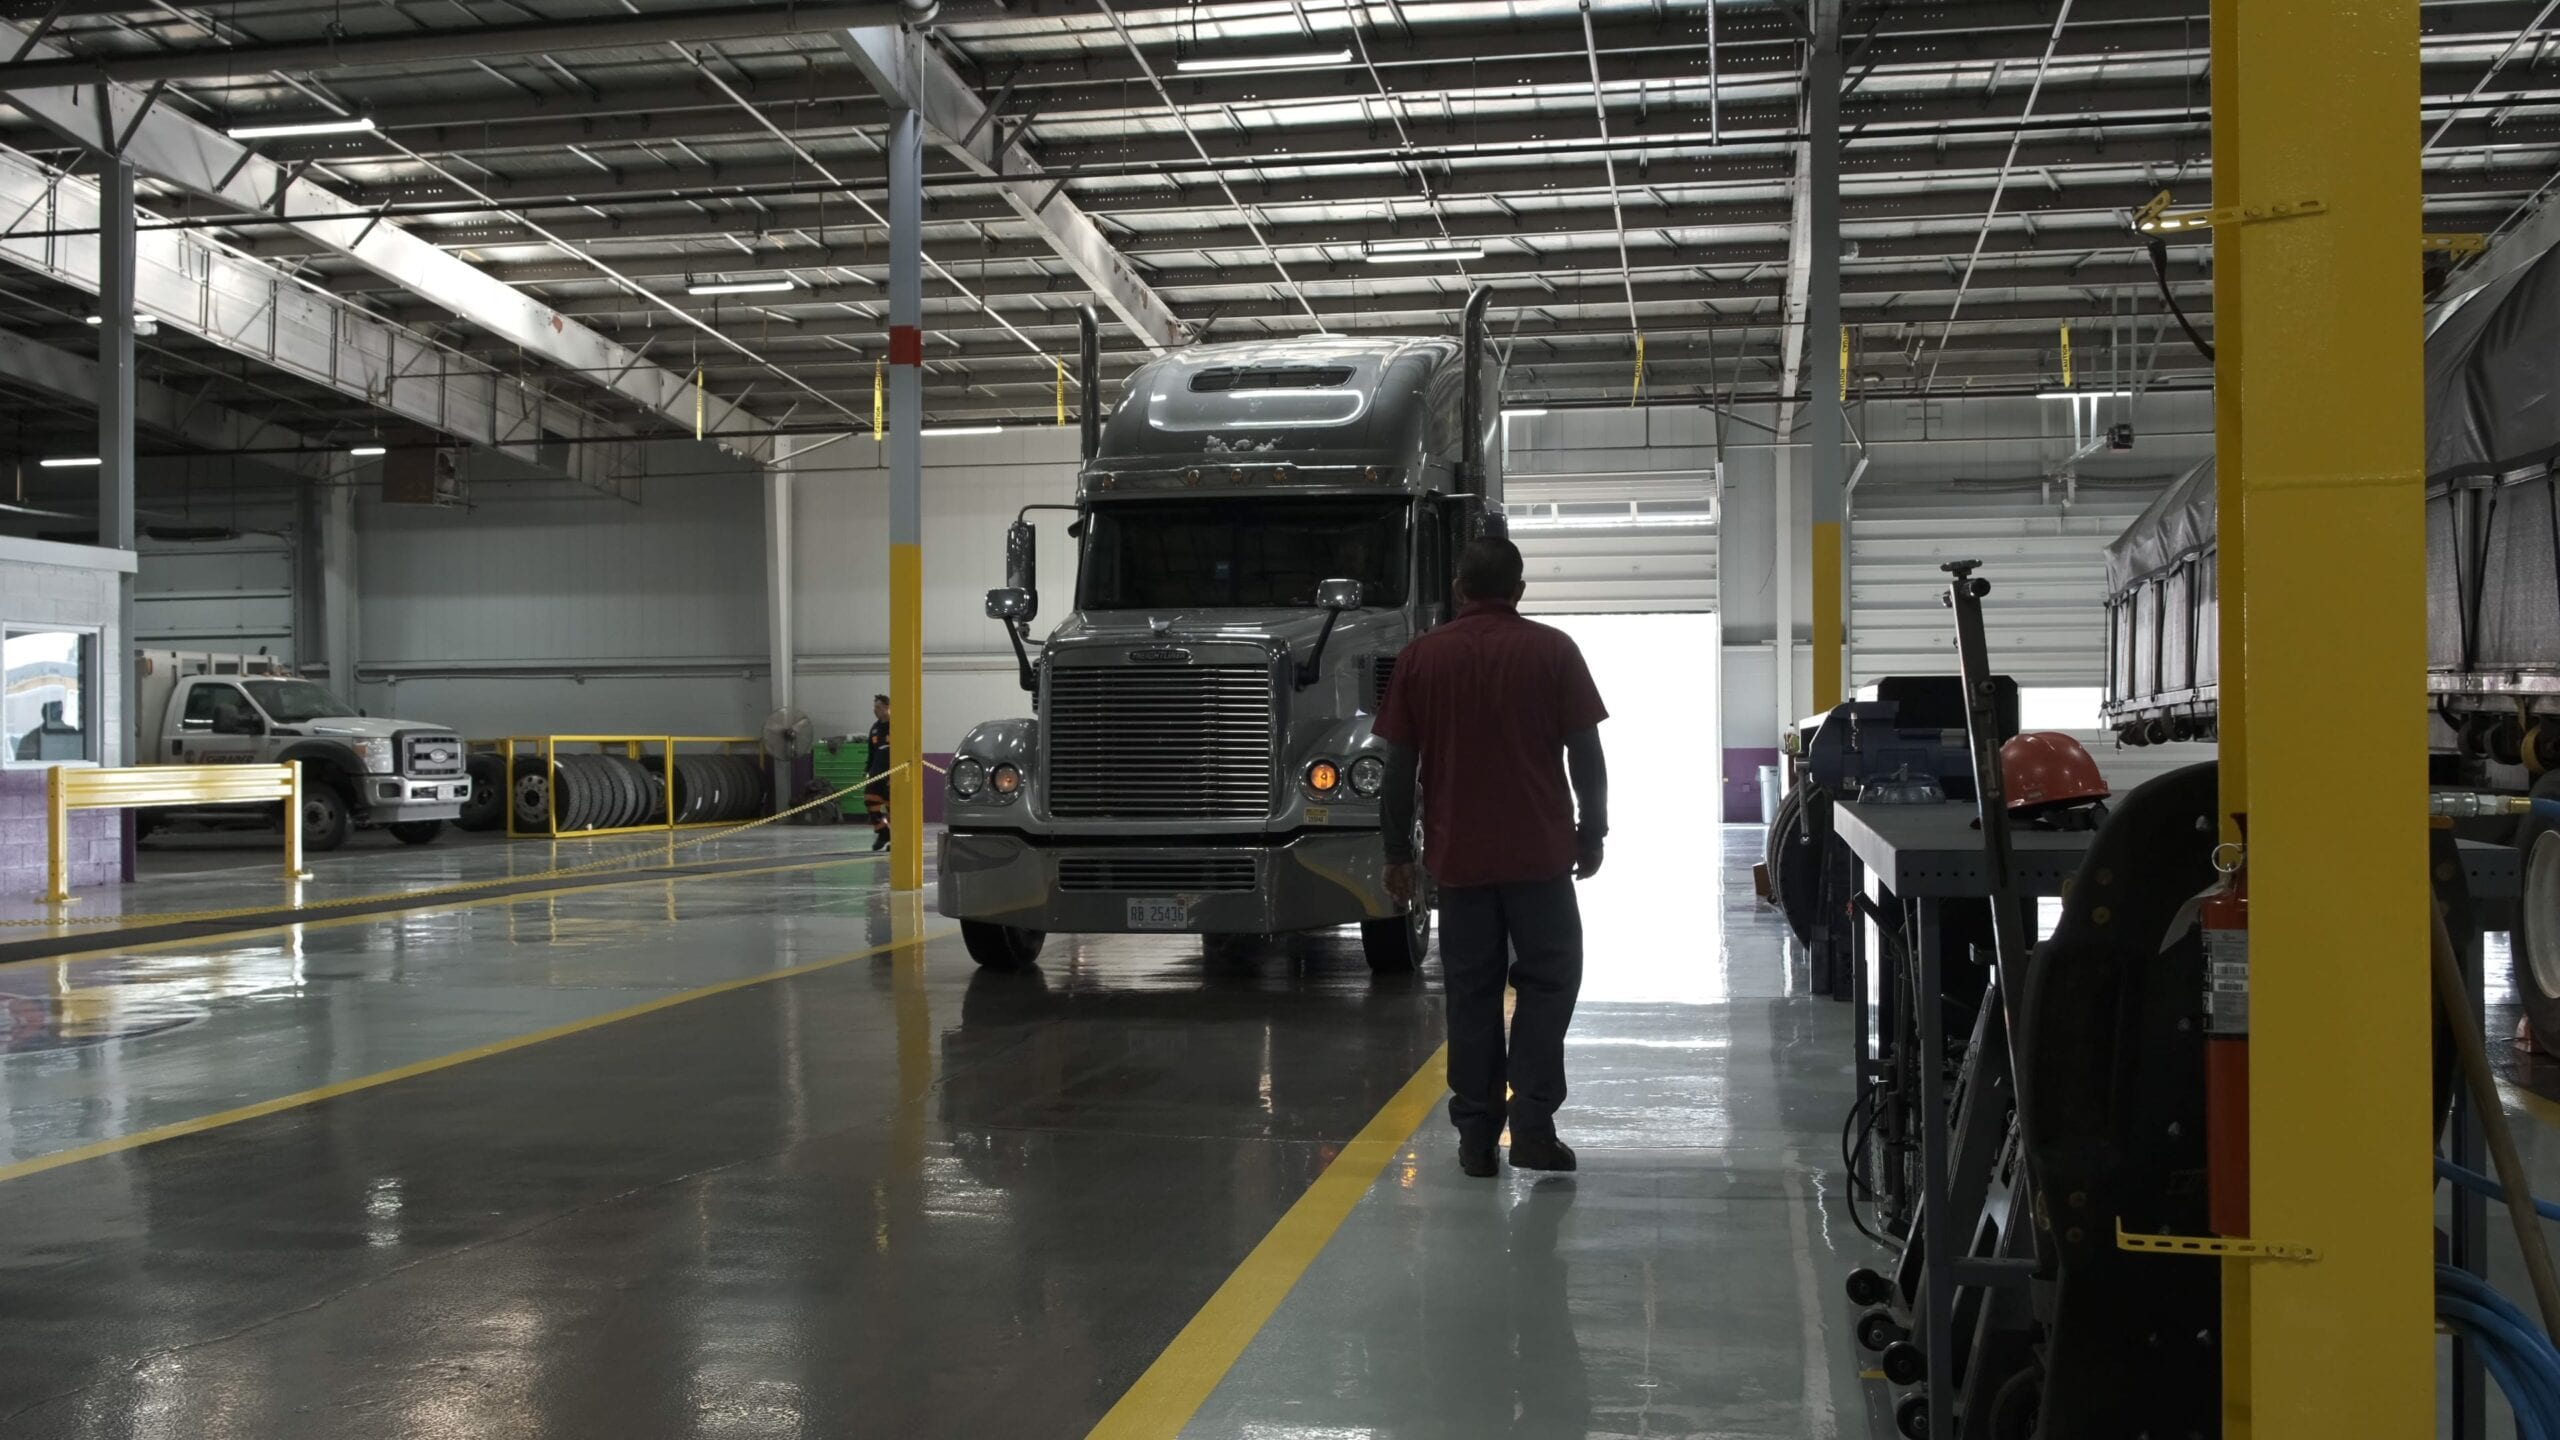 Semi truck pulling into a repair shop for service being greeted by an employee.